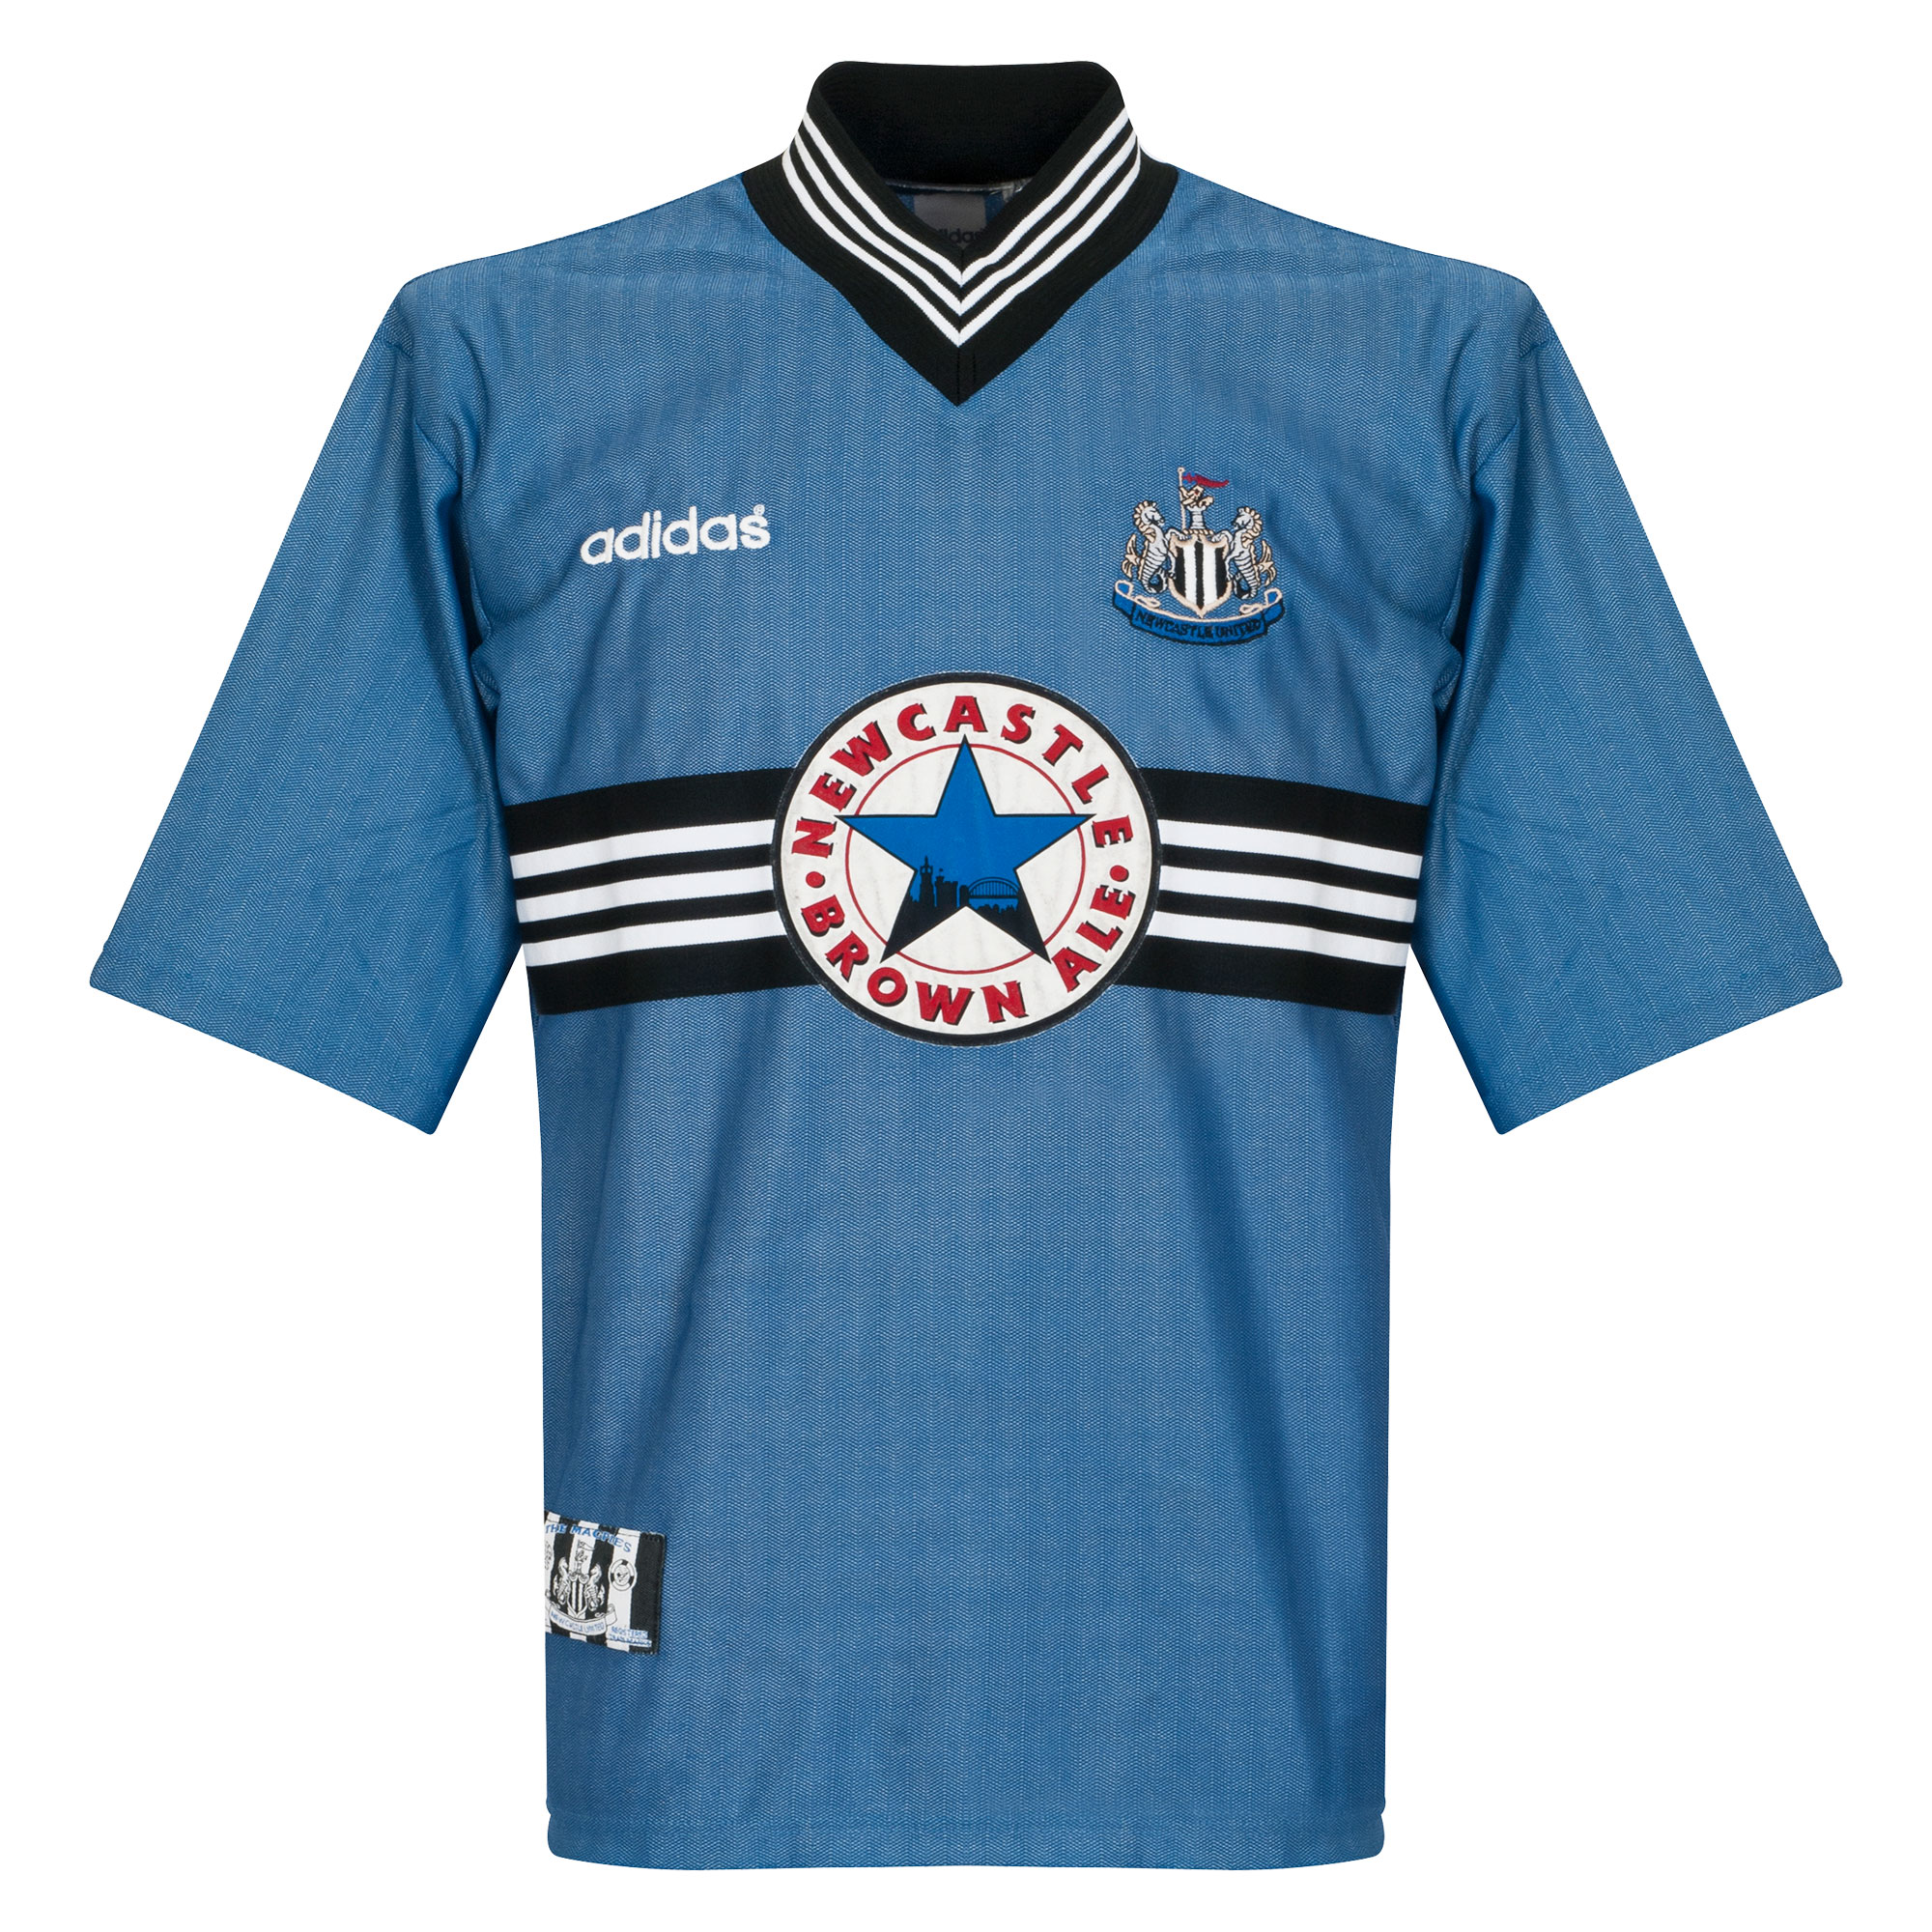 adidas Newcastle United 1996-1997 Away Shirt - USED Condition (Excellent) - Size Large